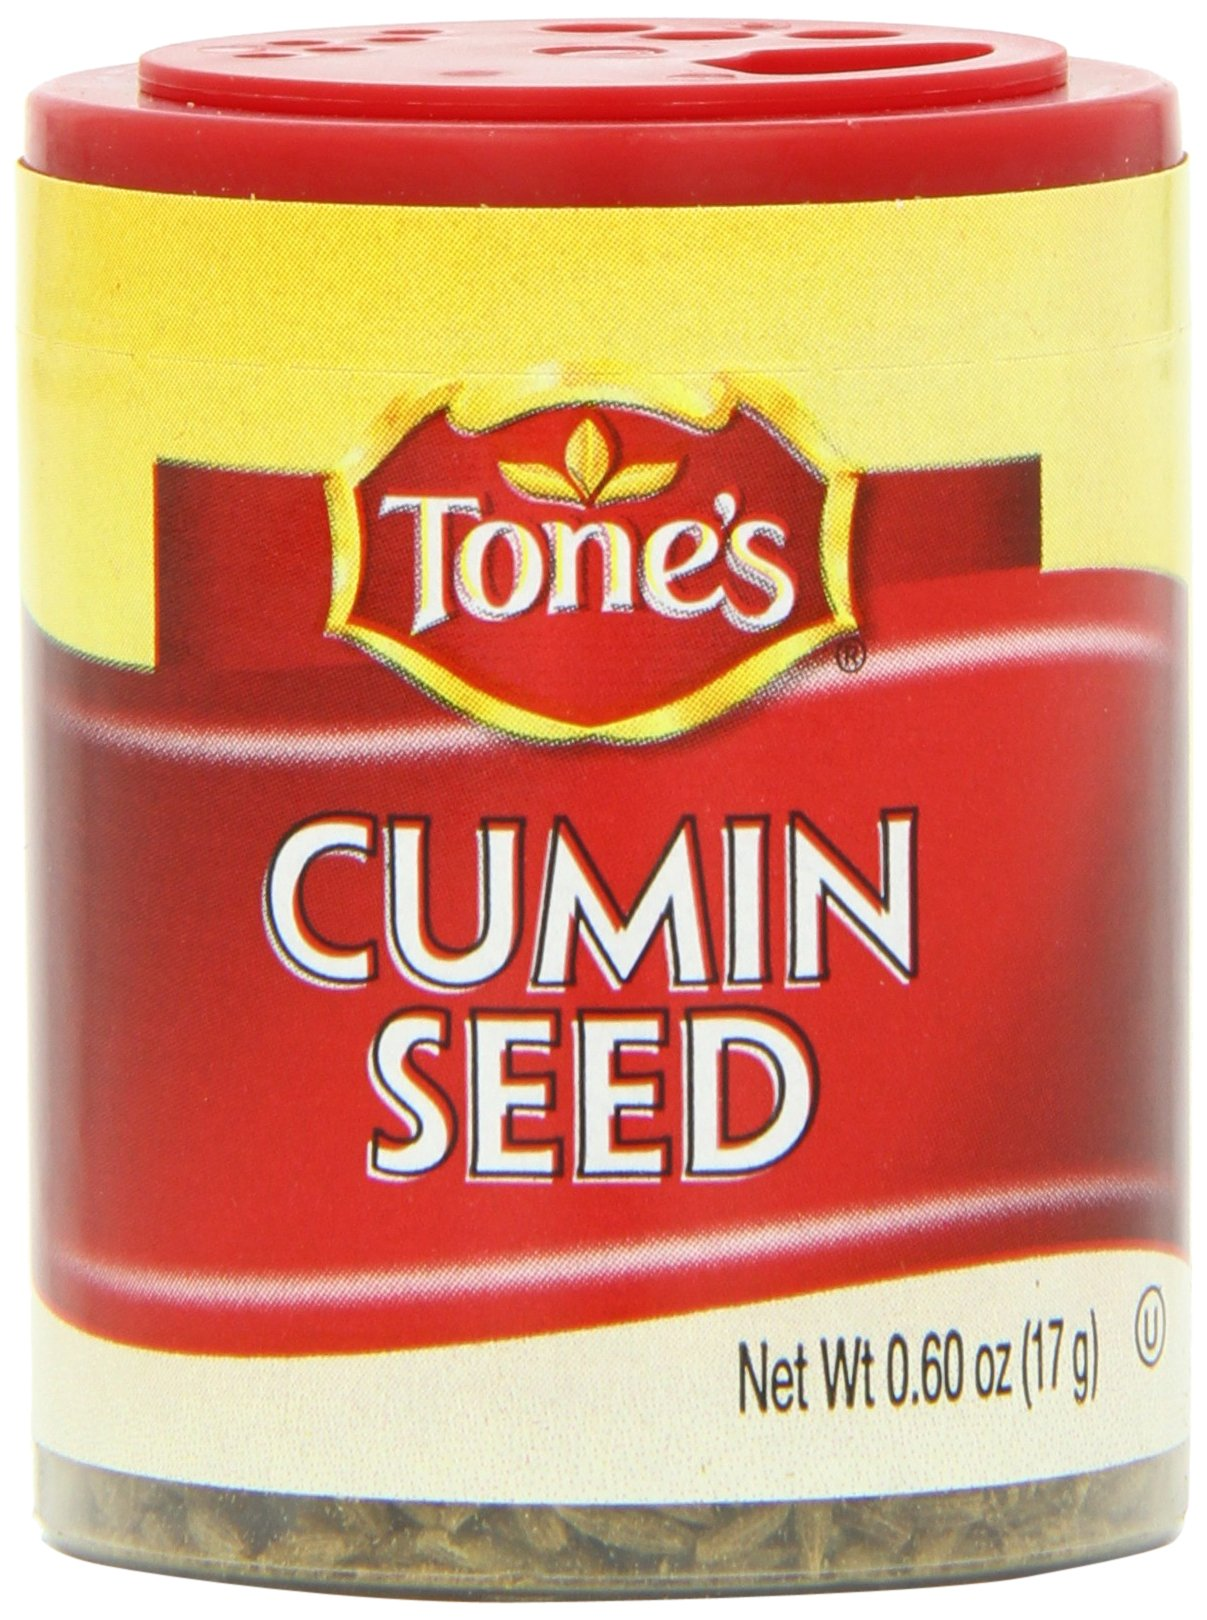 Tone's Mini's Cumin Seed, 0.60 Ounce (Pack of 6)